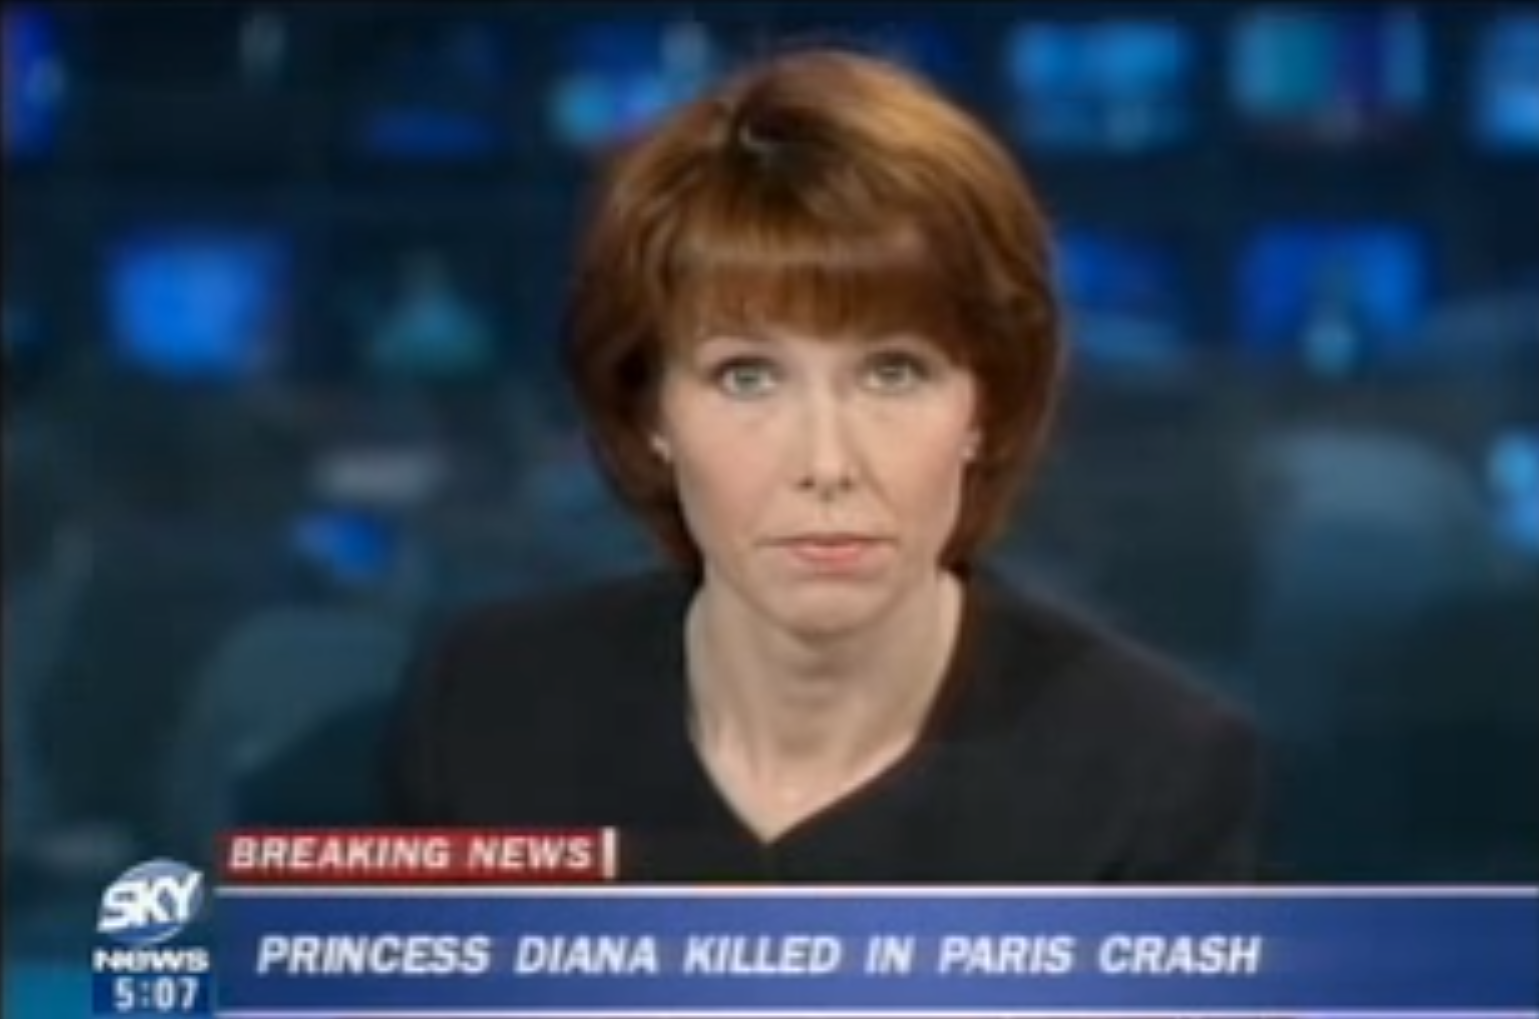 How Princess Diana's death was reported in the pre-social media